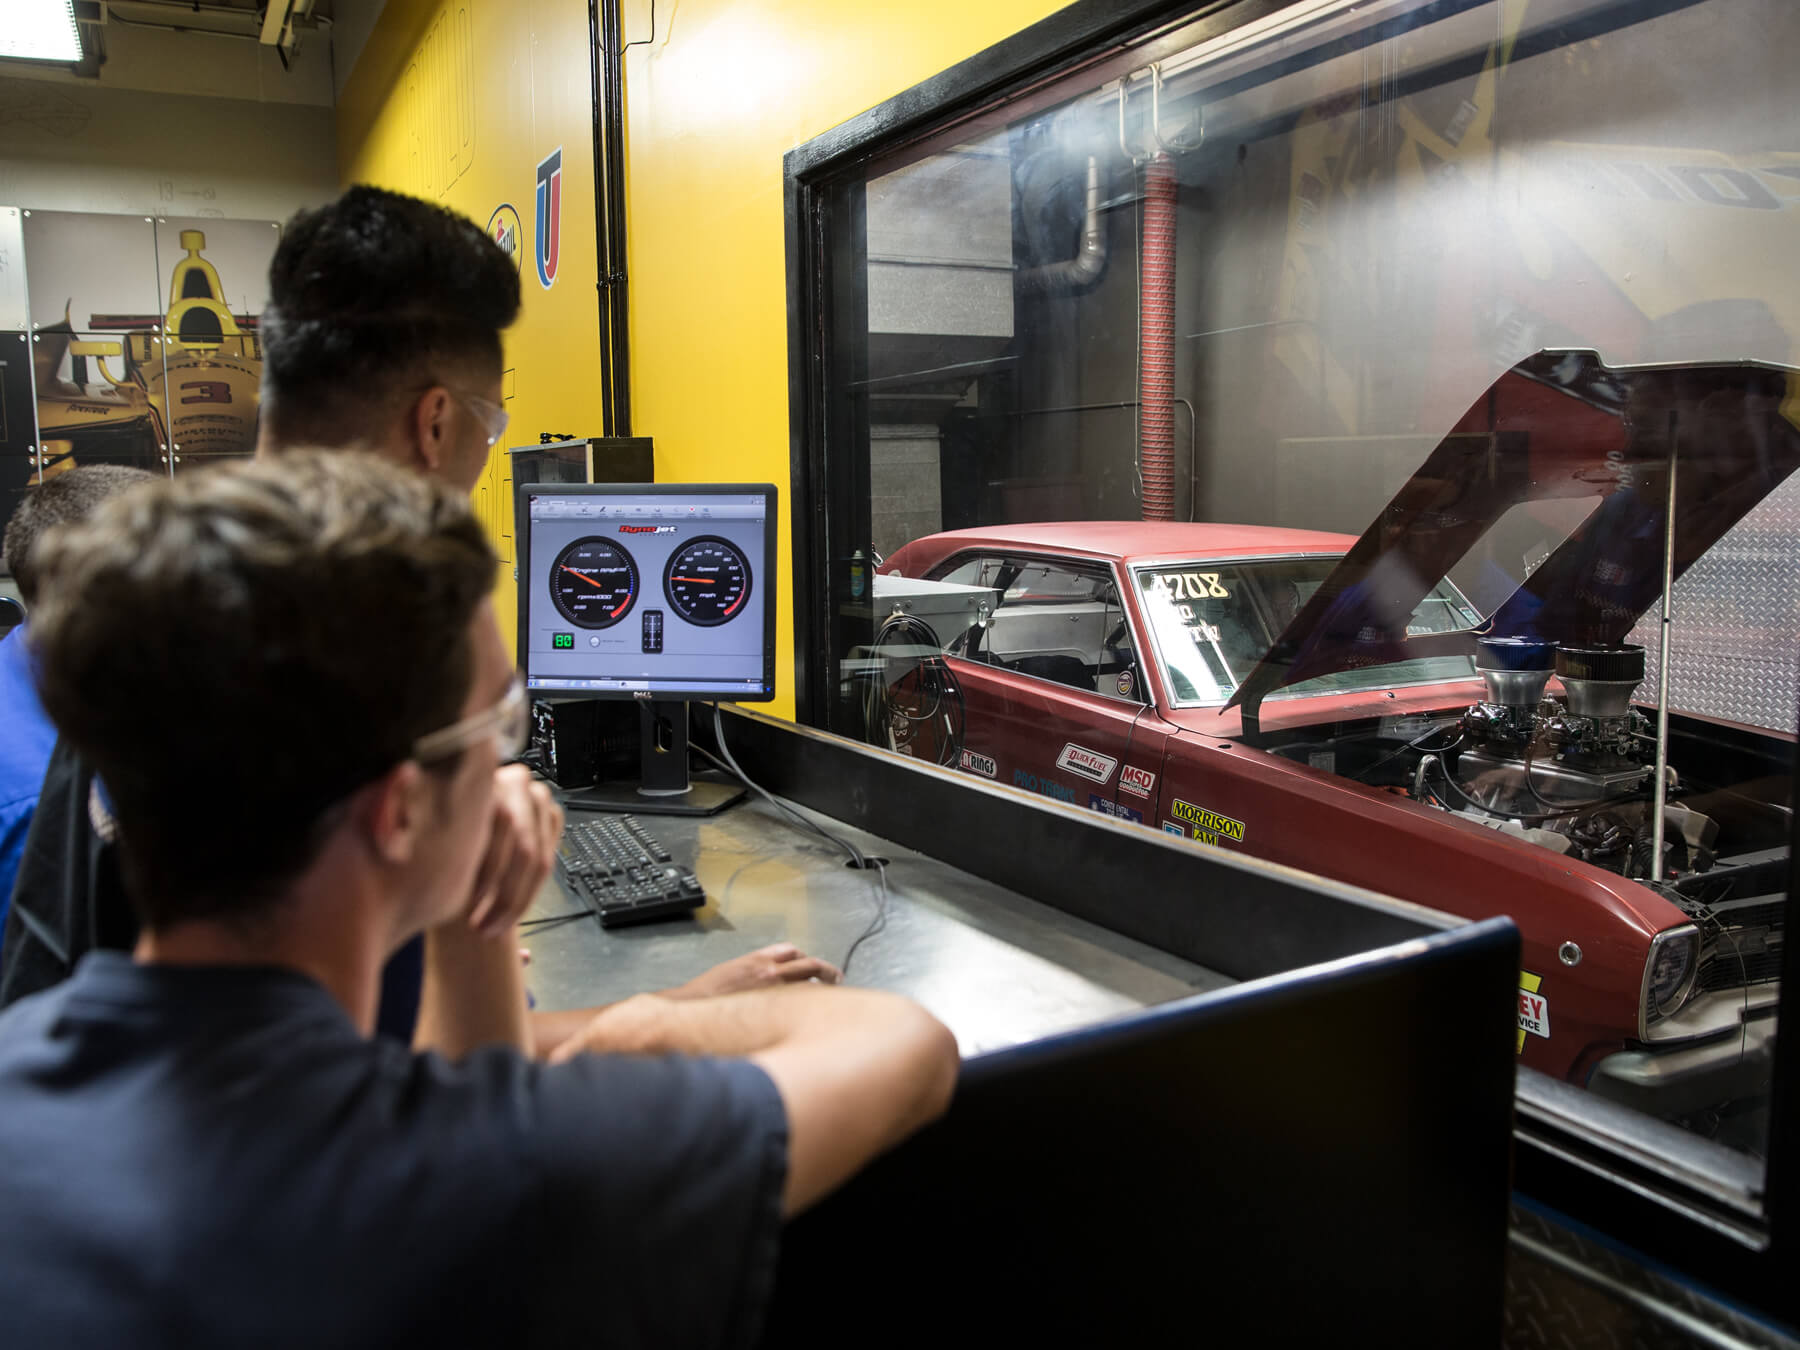 Students looking at a computer behind the glass in the Dyno lab